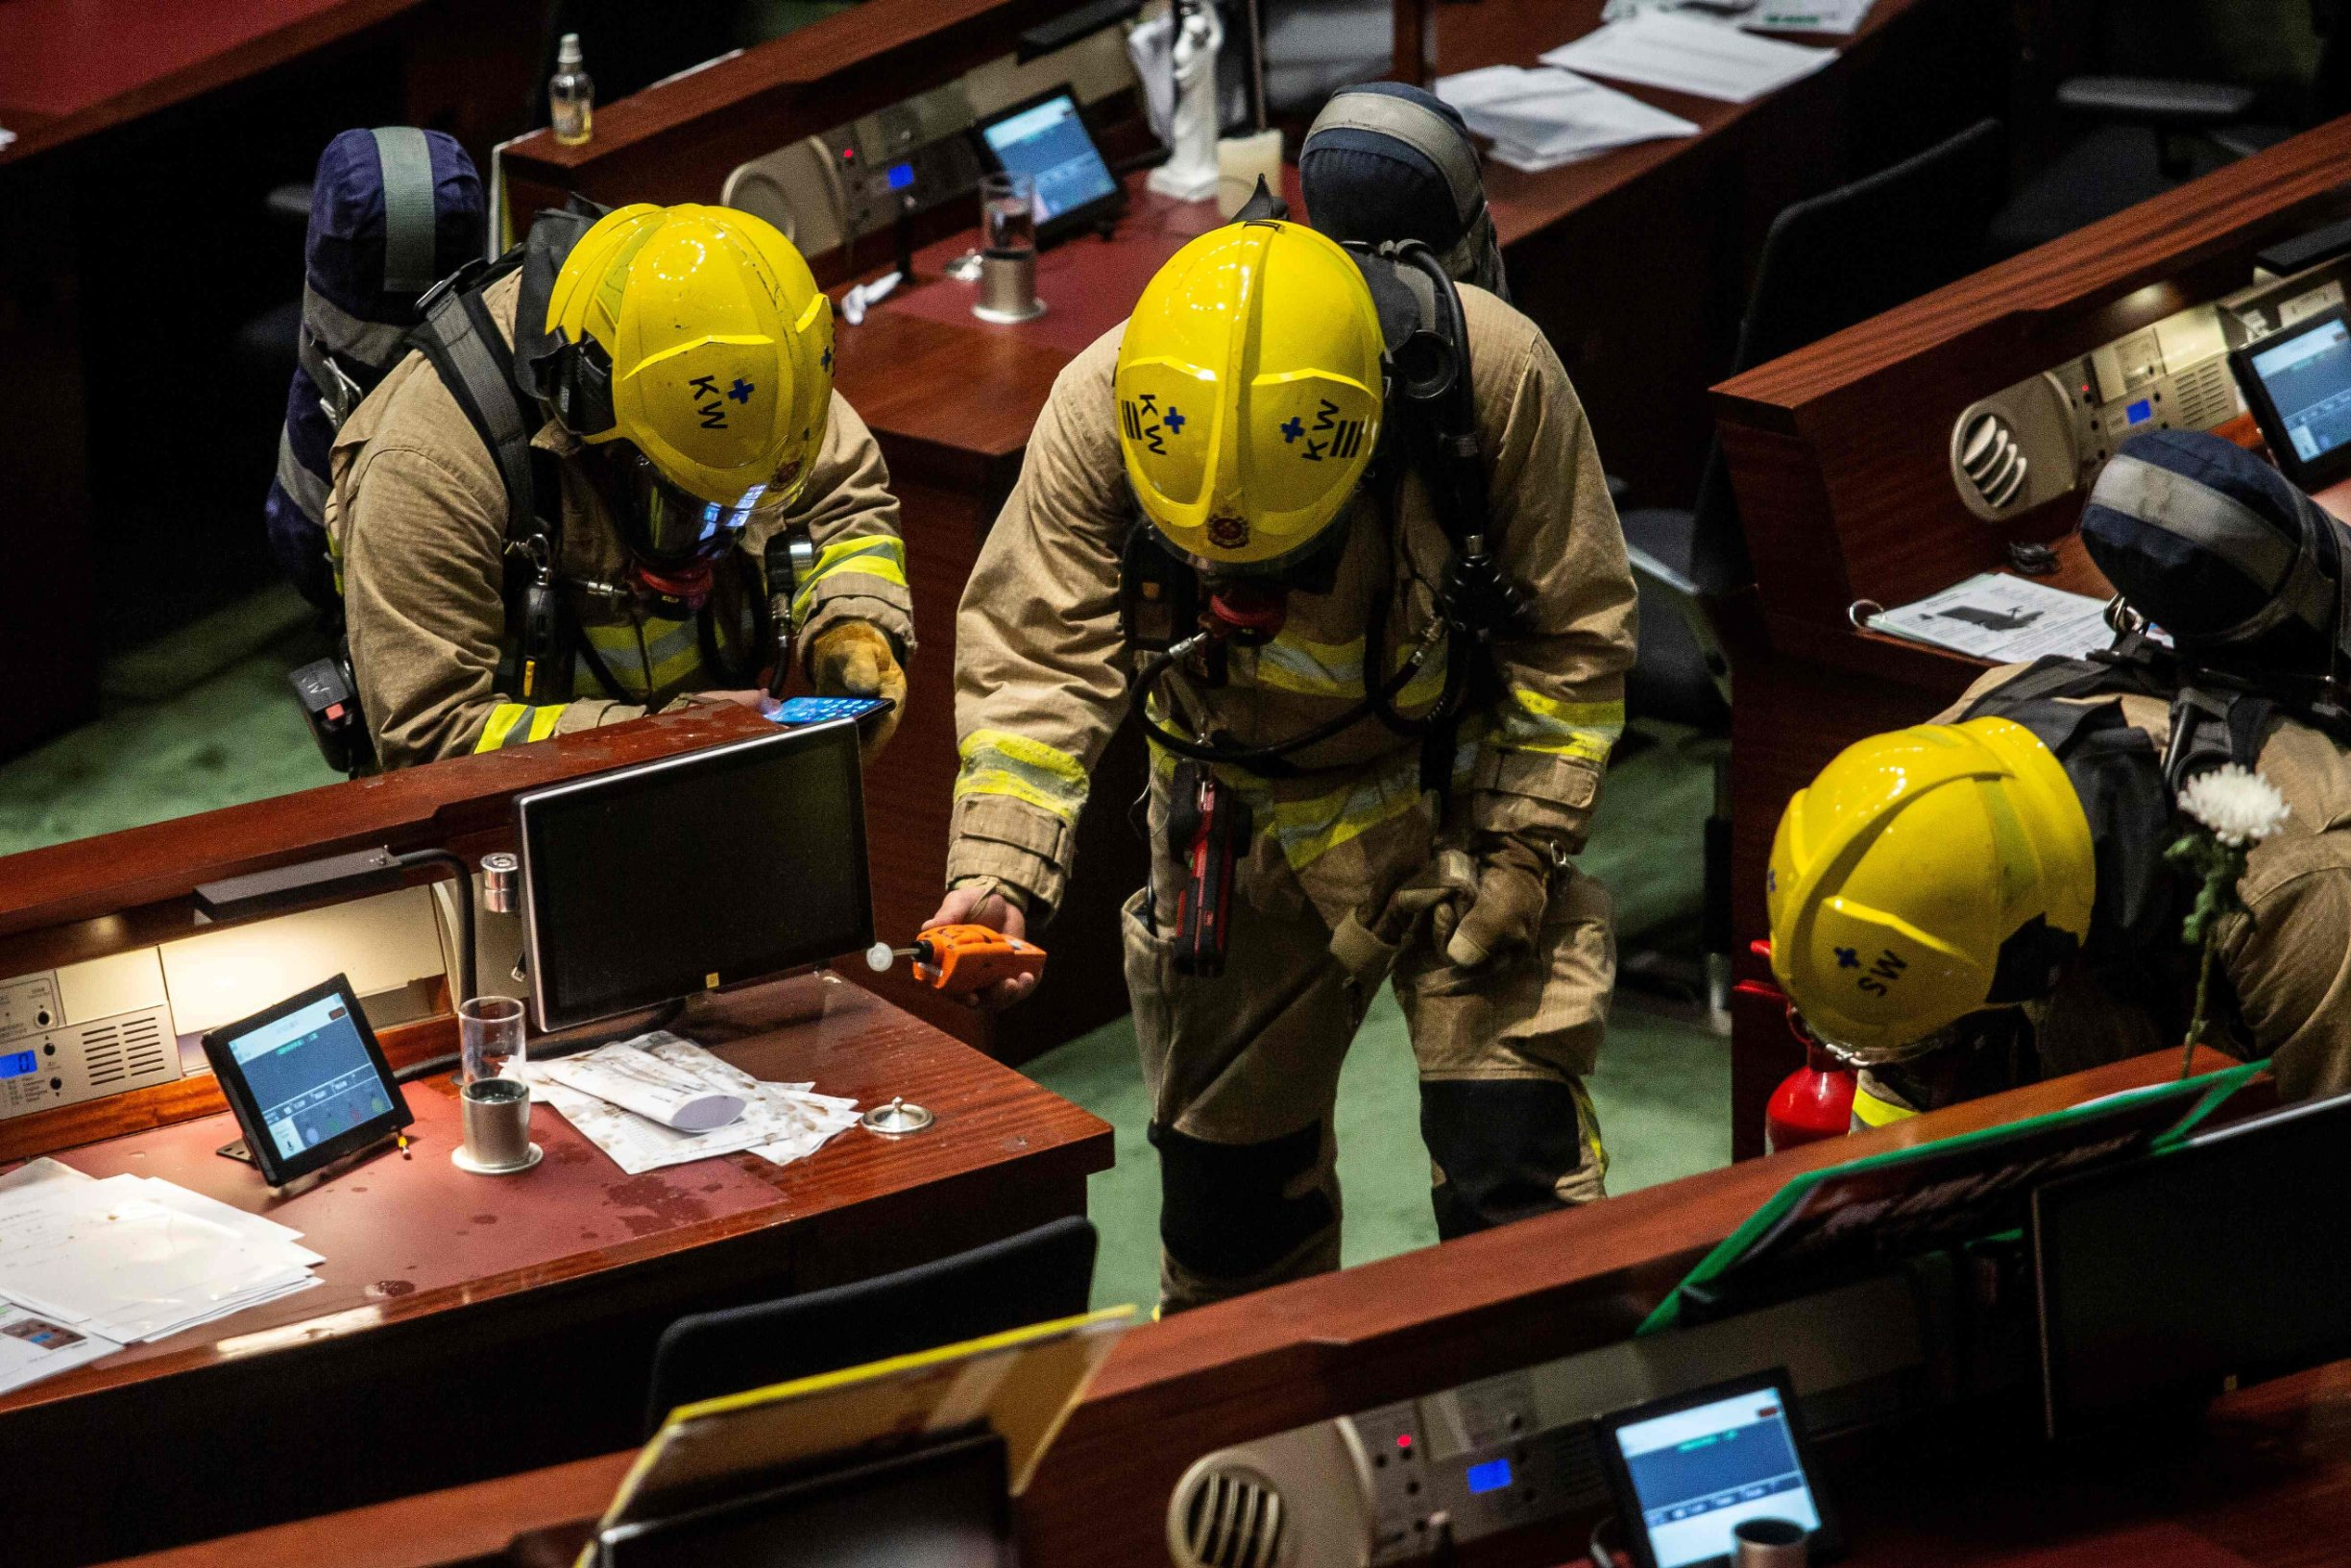 Members of the fire brigade perform tests in the main chamber of the Legislative Council after pan-democrat lawmakers hurled an odorous liquid during the third reading of the national anthem bill in Hong Kong on June 4, 2020, ahead of a vote over a law that bans insulting China's national anthem. (Photo by ISAAC LAWRENCE / AFP)